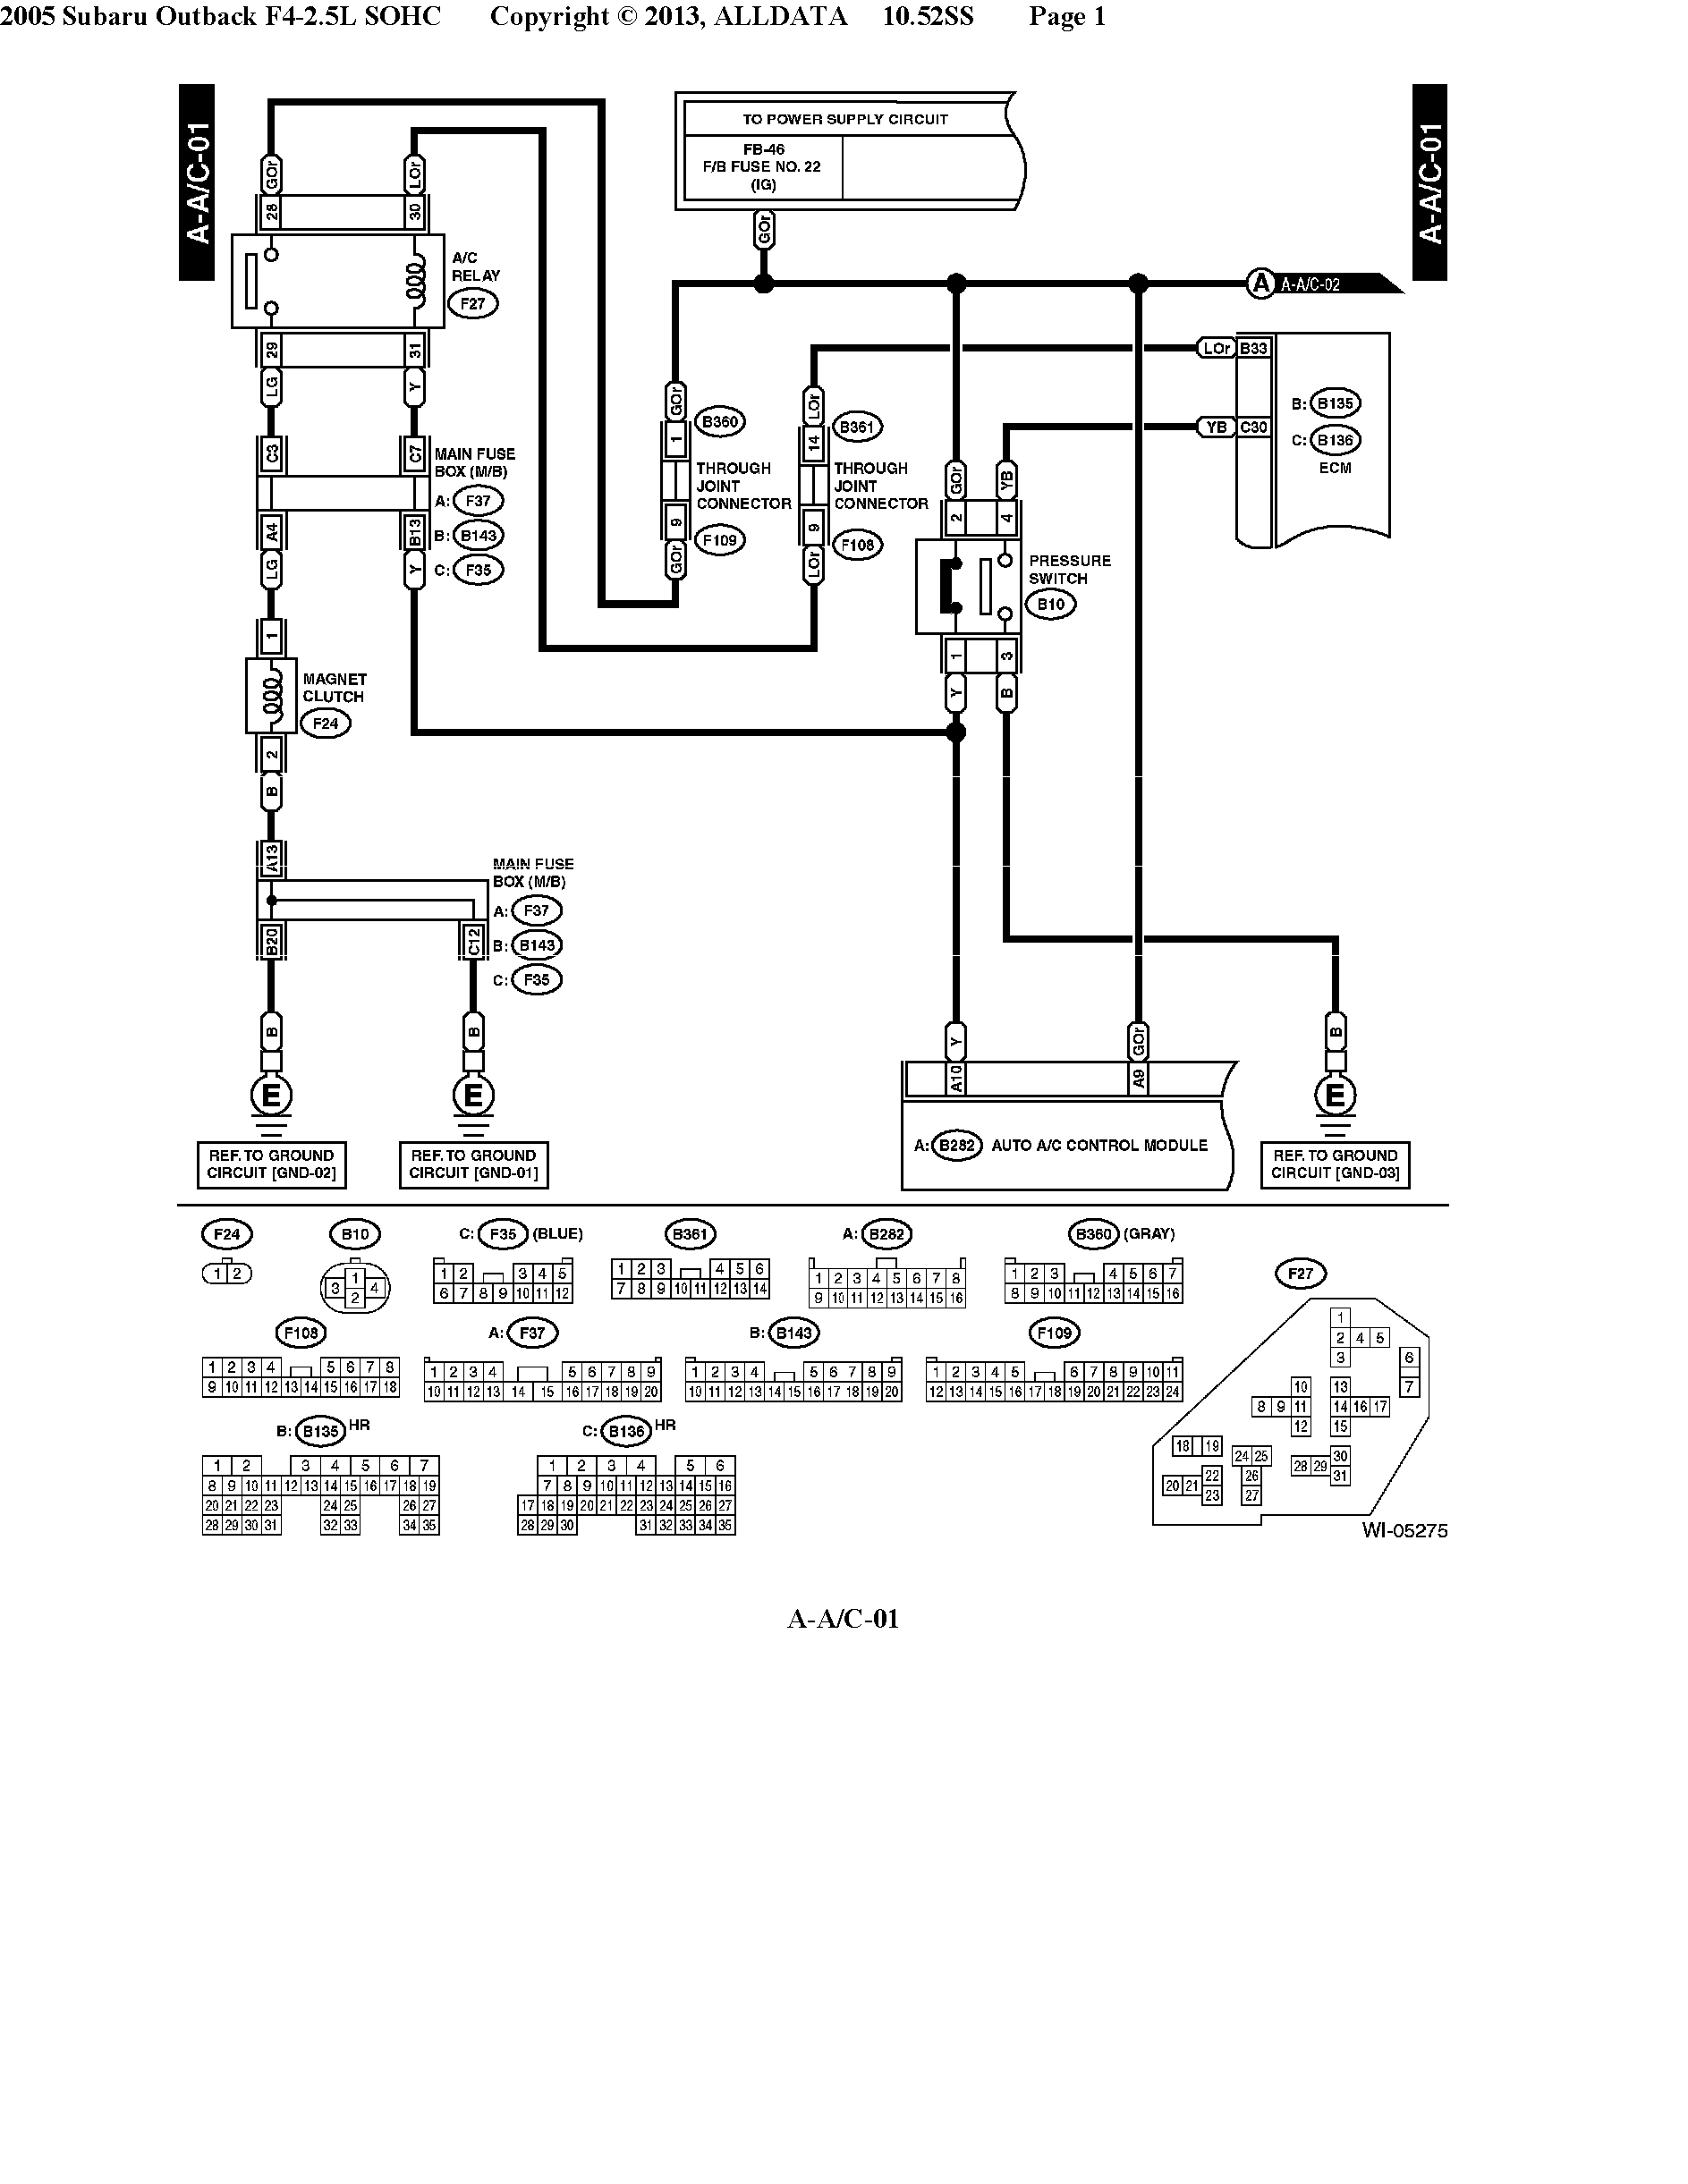 hight resolution of electrical wiring diagrams 2003 subara outback ll bean my wiring mix 05 u0027 h6 a c subaru h6 wiring diagram